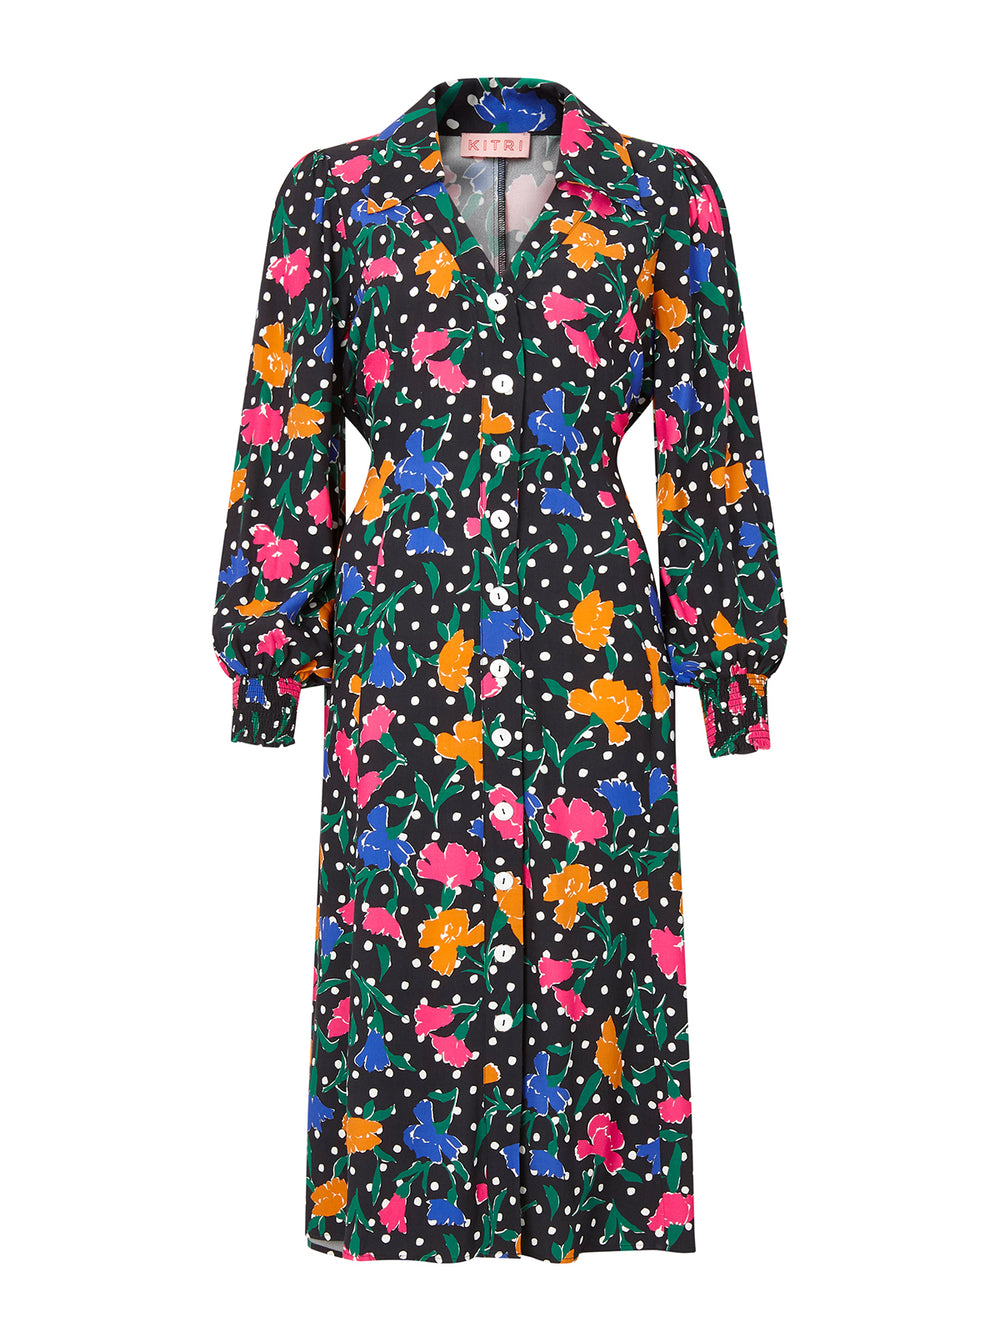 Sylvie Floral Polka Dot Shirt Dress by KITRI Studio